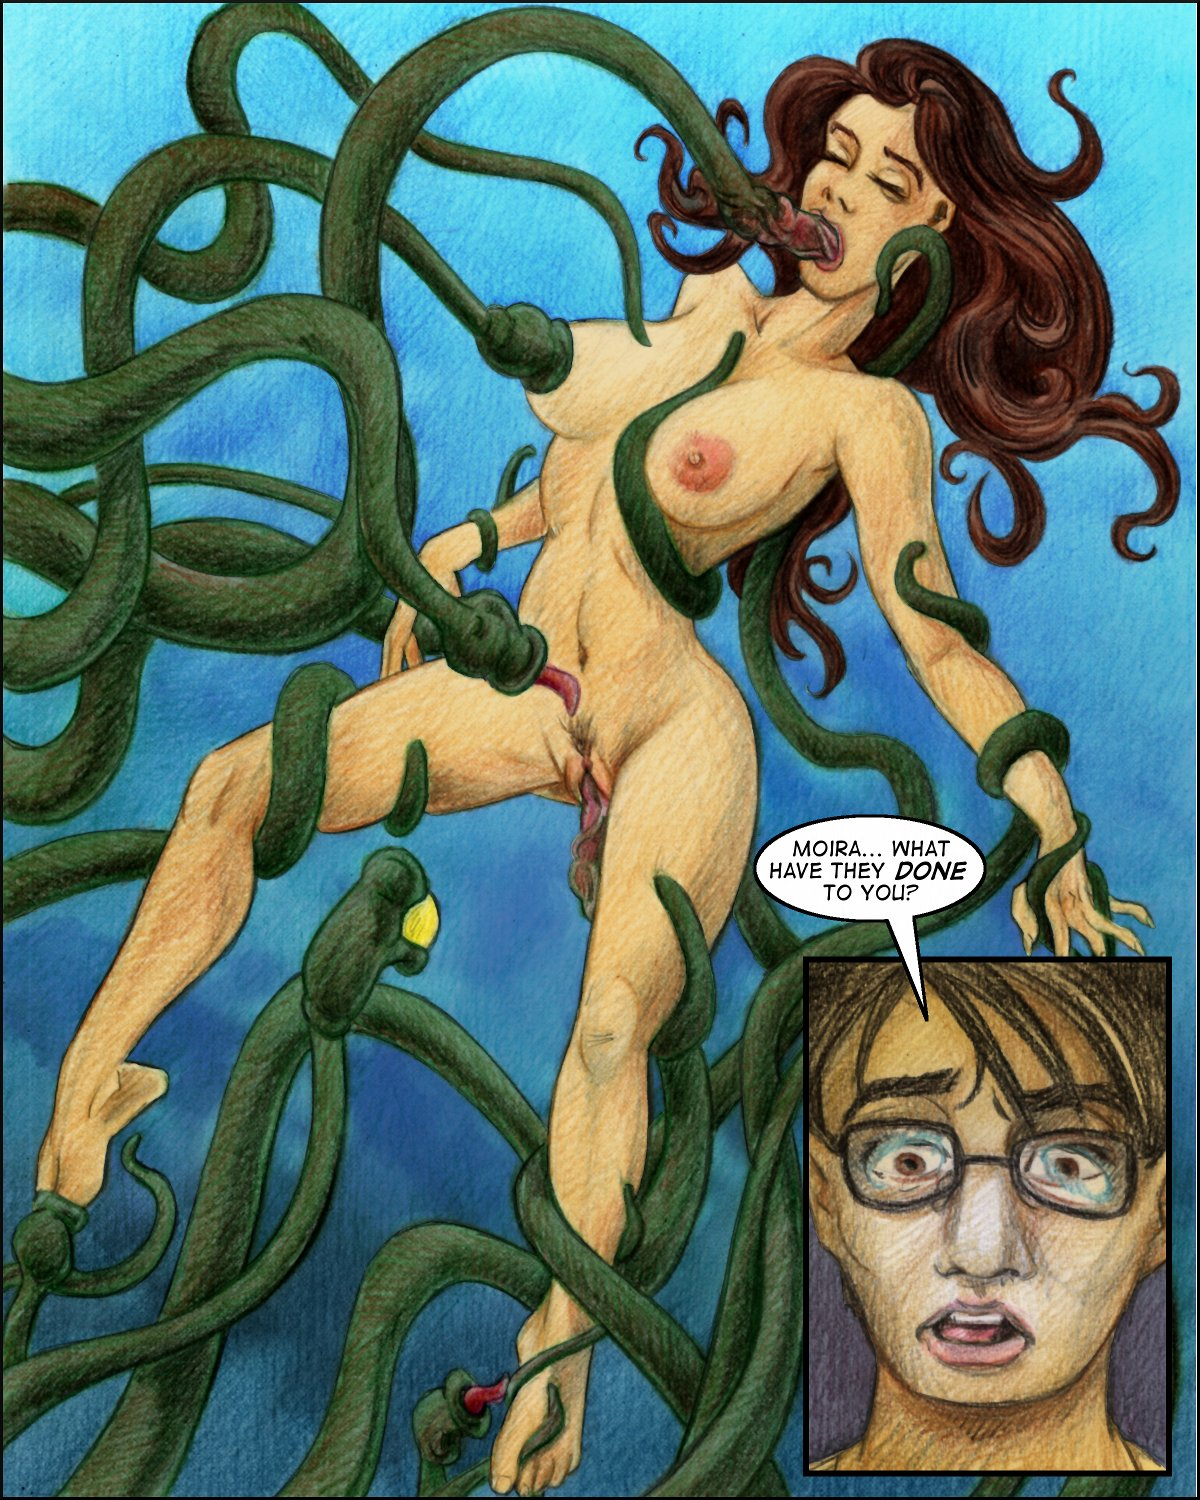 Moira gets all tentacle sexed, while Aloysius watches in disgust.